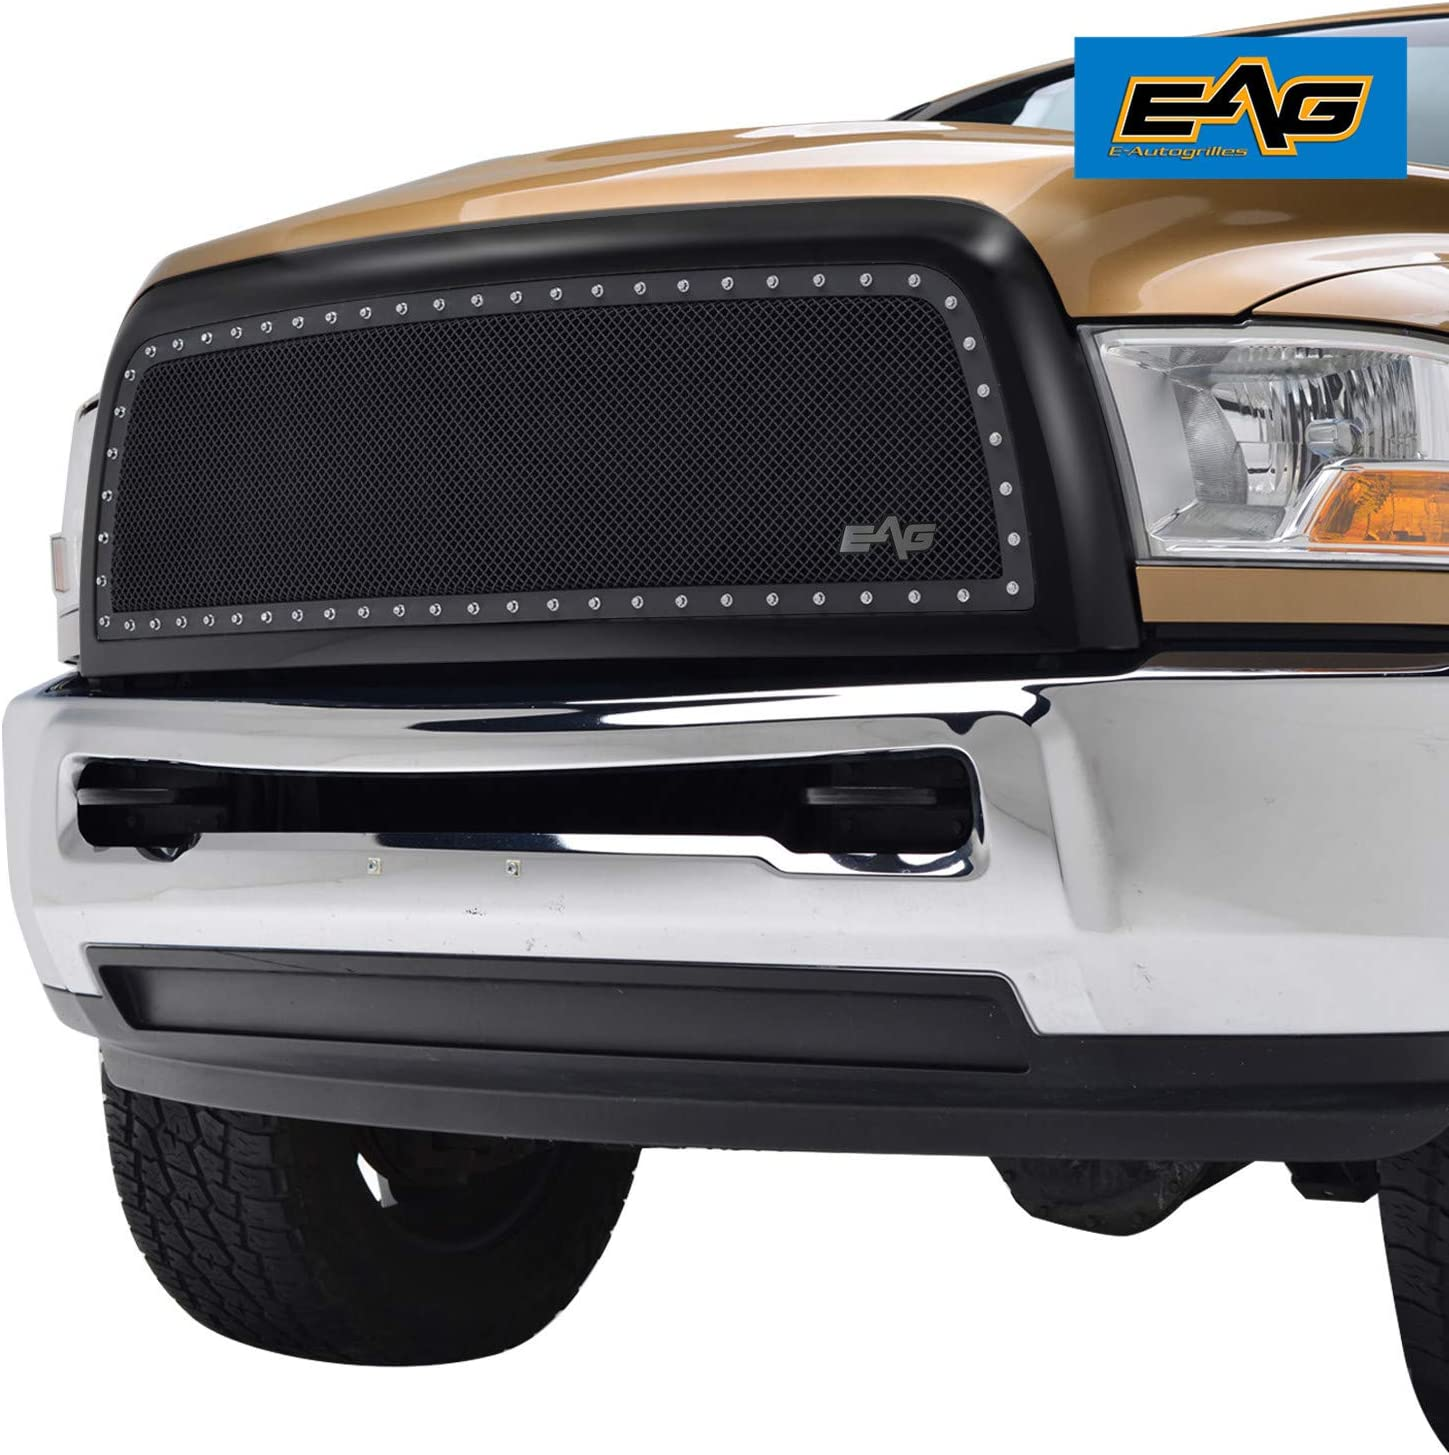 amazon com eag rivet stainless steel wire mesh grille fit for 2010 2012 dodge ram 2500 3500 automotive eag rivet stainless steel wire mesh grille fit for 2010 2012 dodge ram 2500 3500